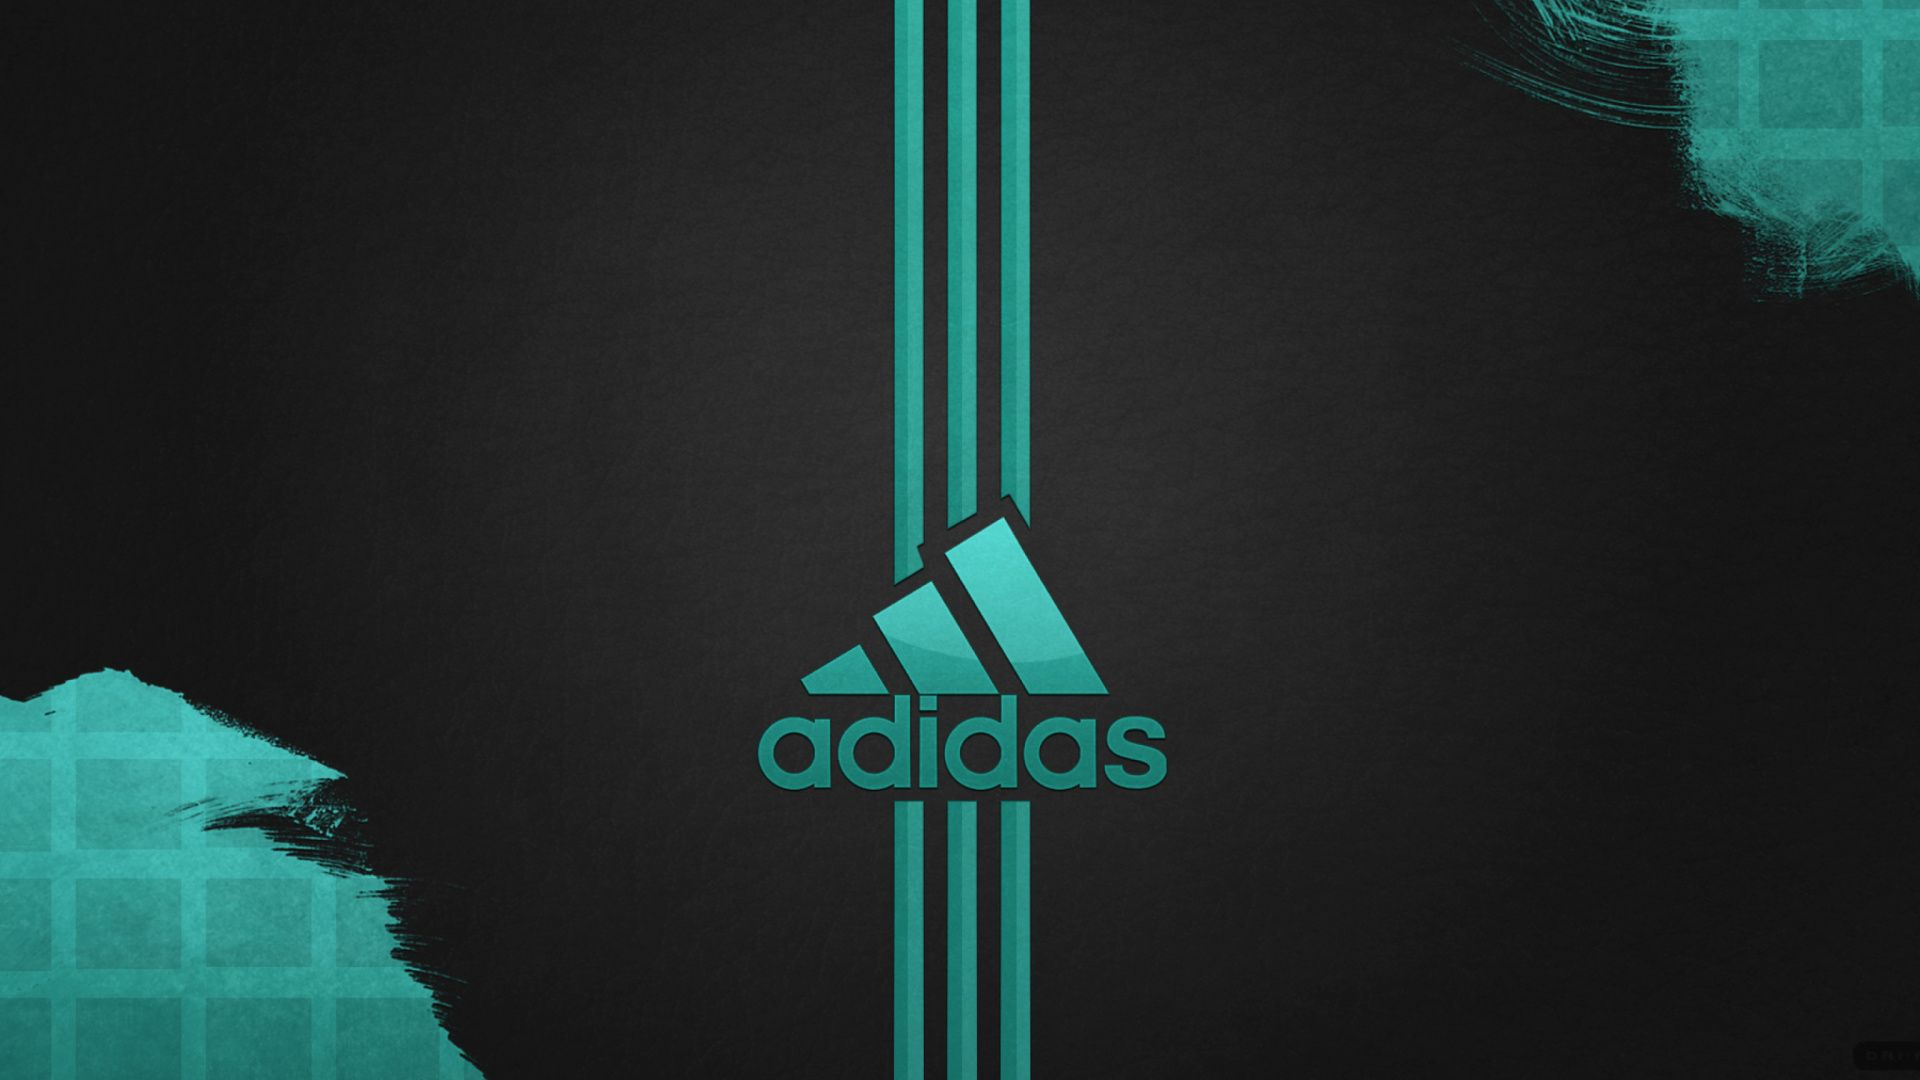 Wallpapers Adidas Iphone